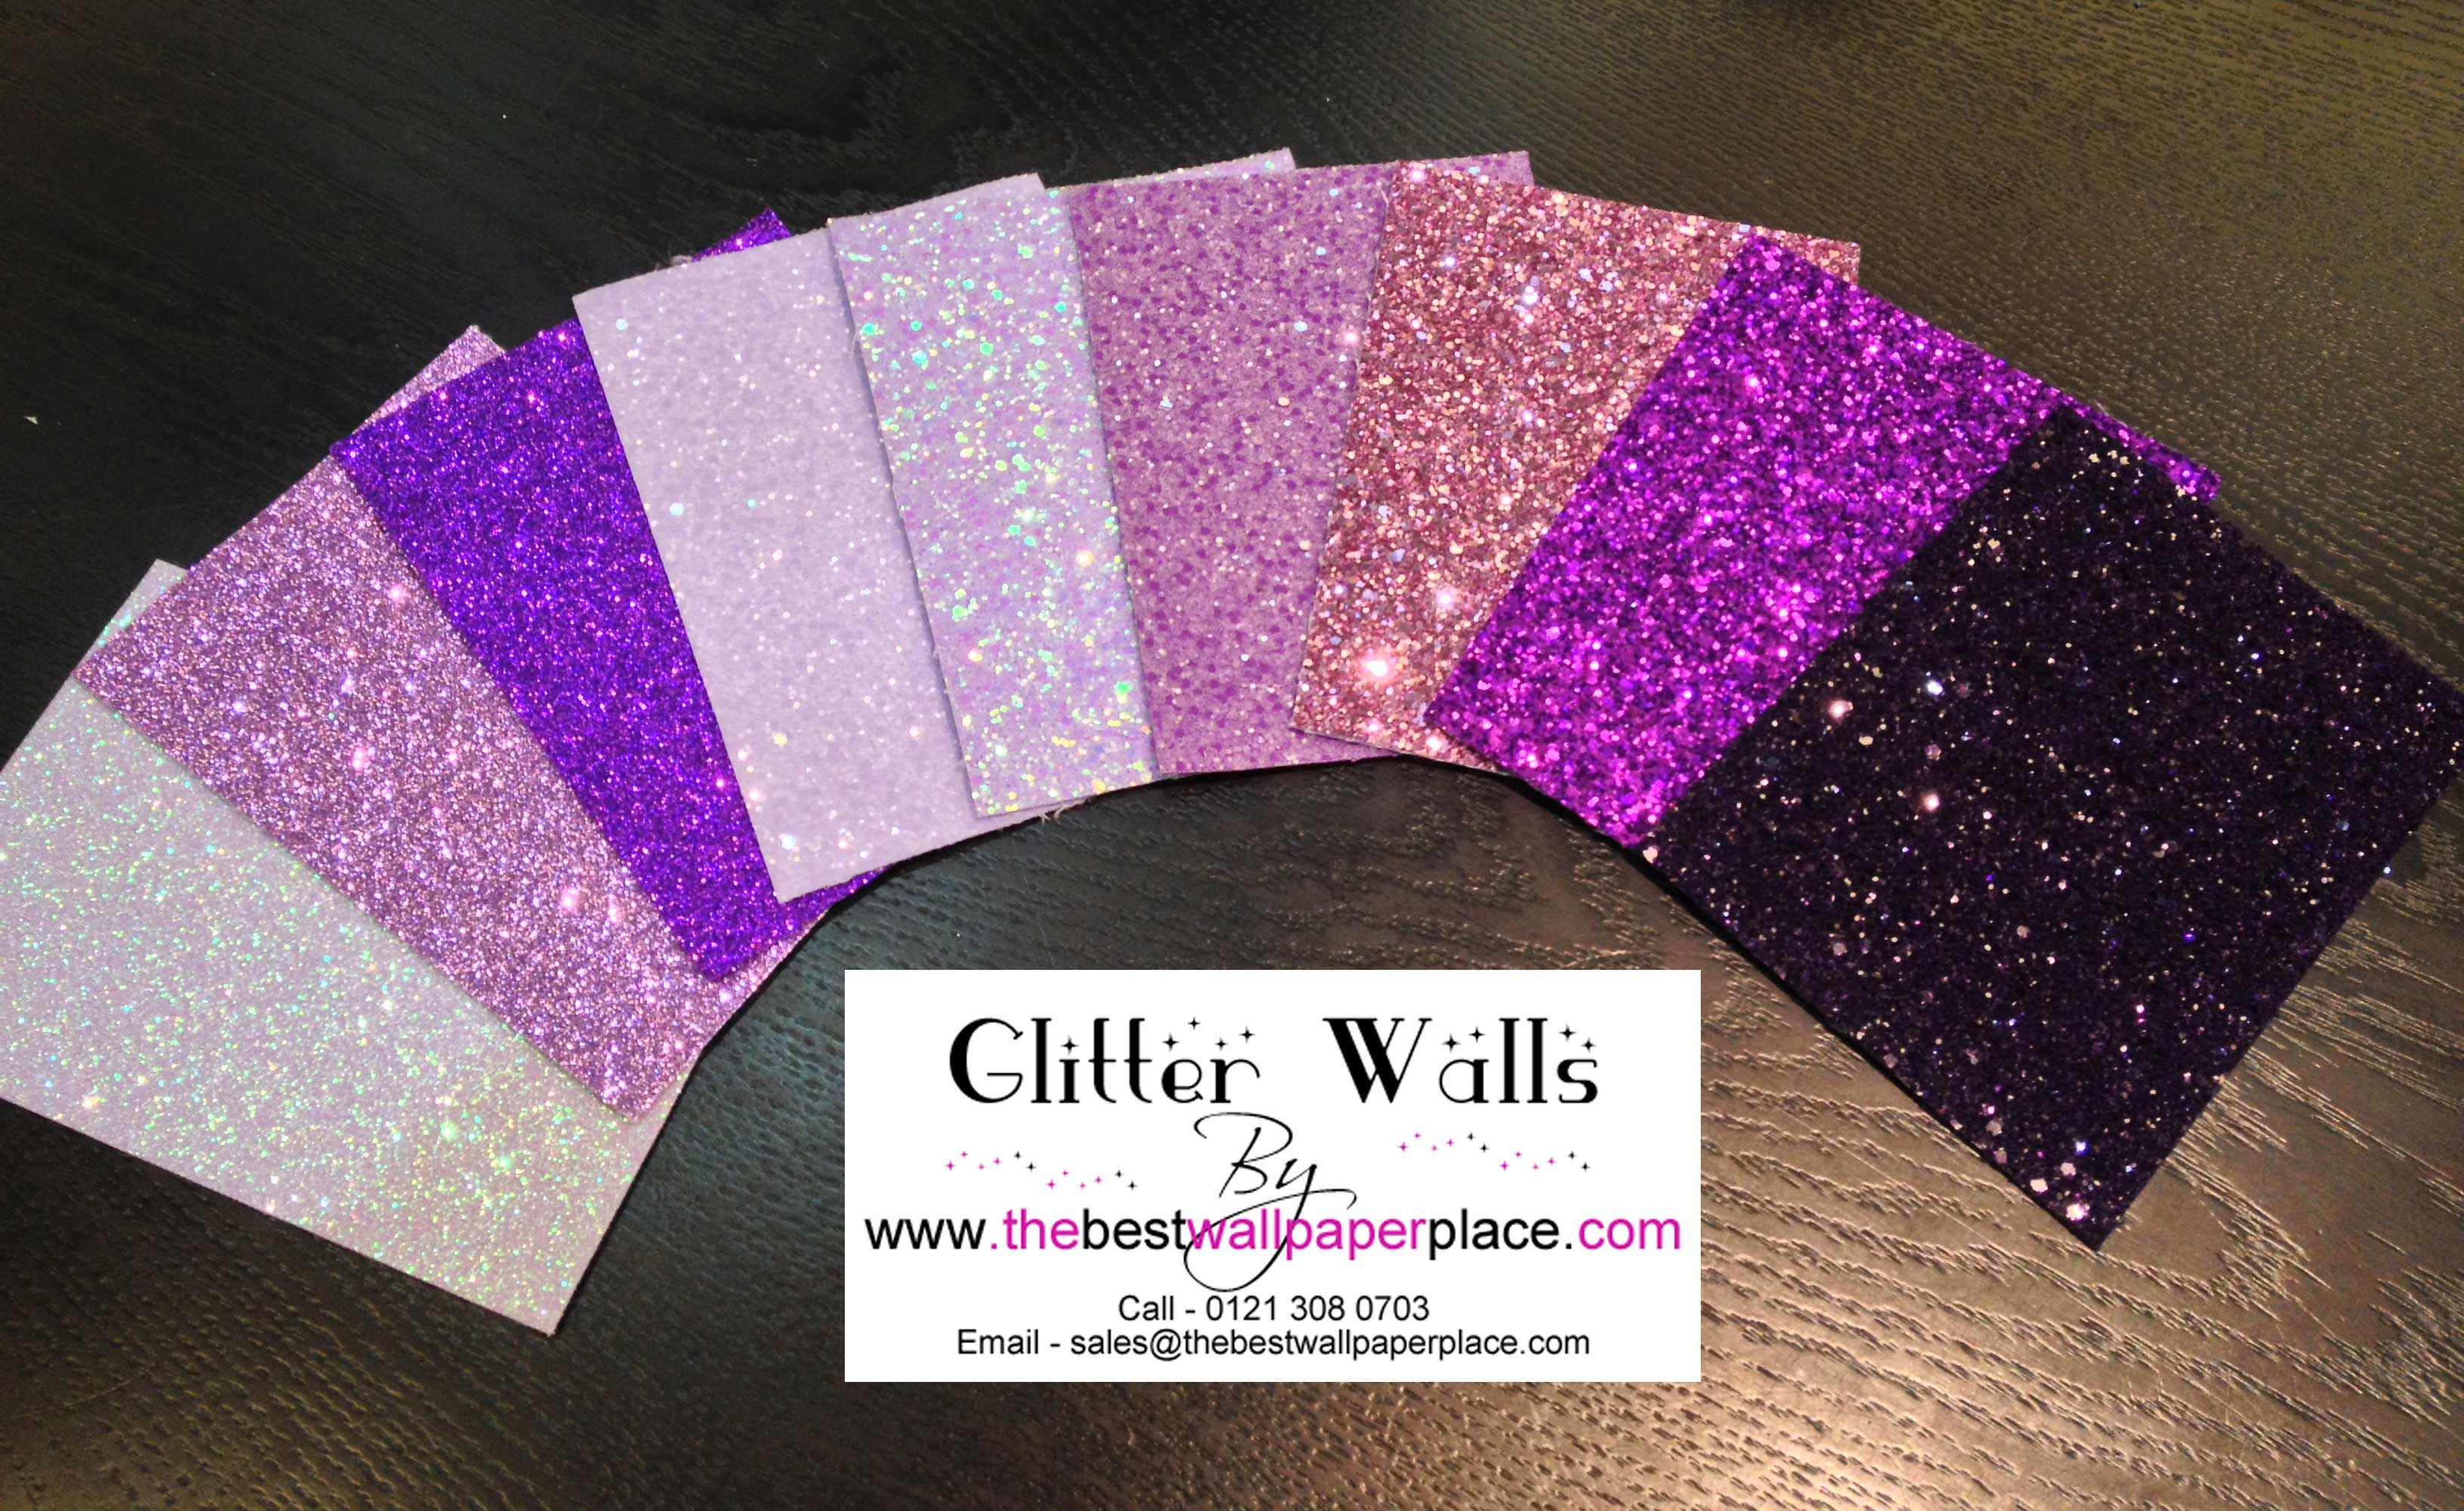 Shades of Purple #Glitterwallpaper from the best wallpaper place. There are over 40 colours in the Glitter collection and 2 fabulous styles. #GlitterWalls